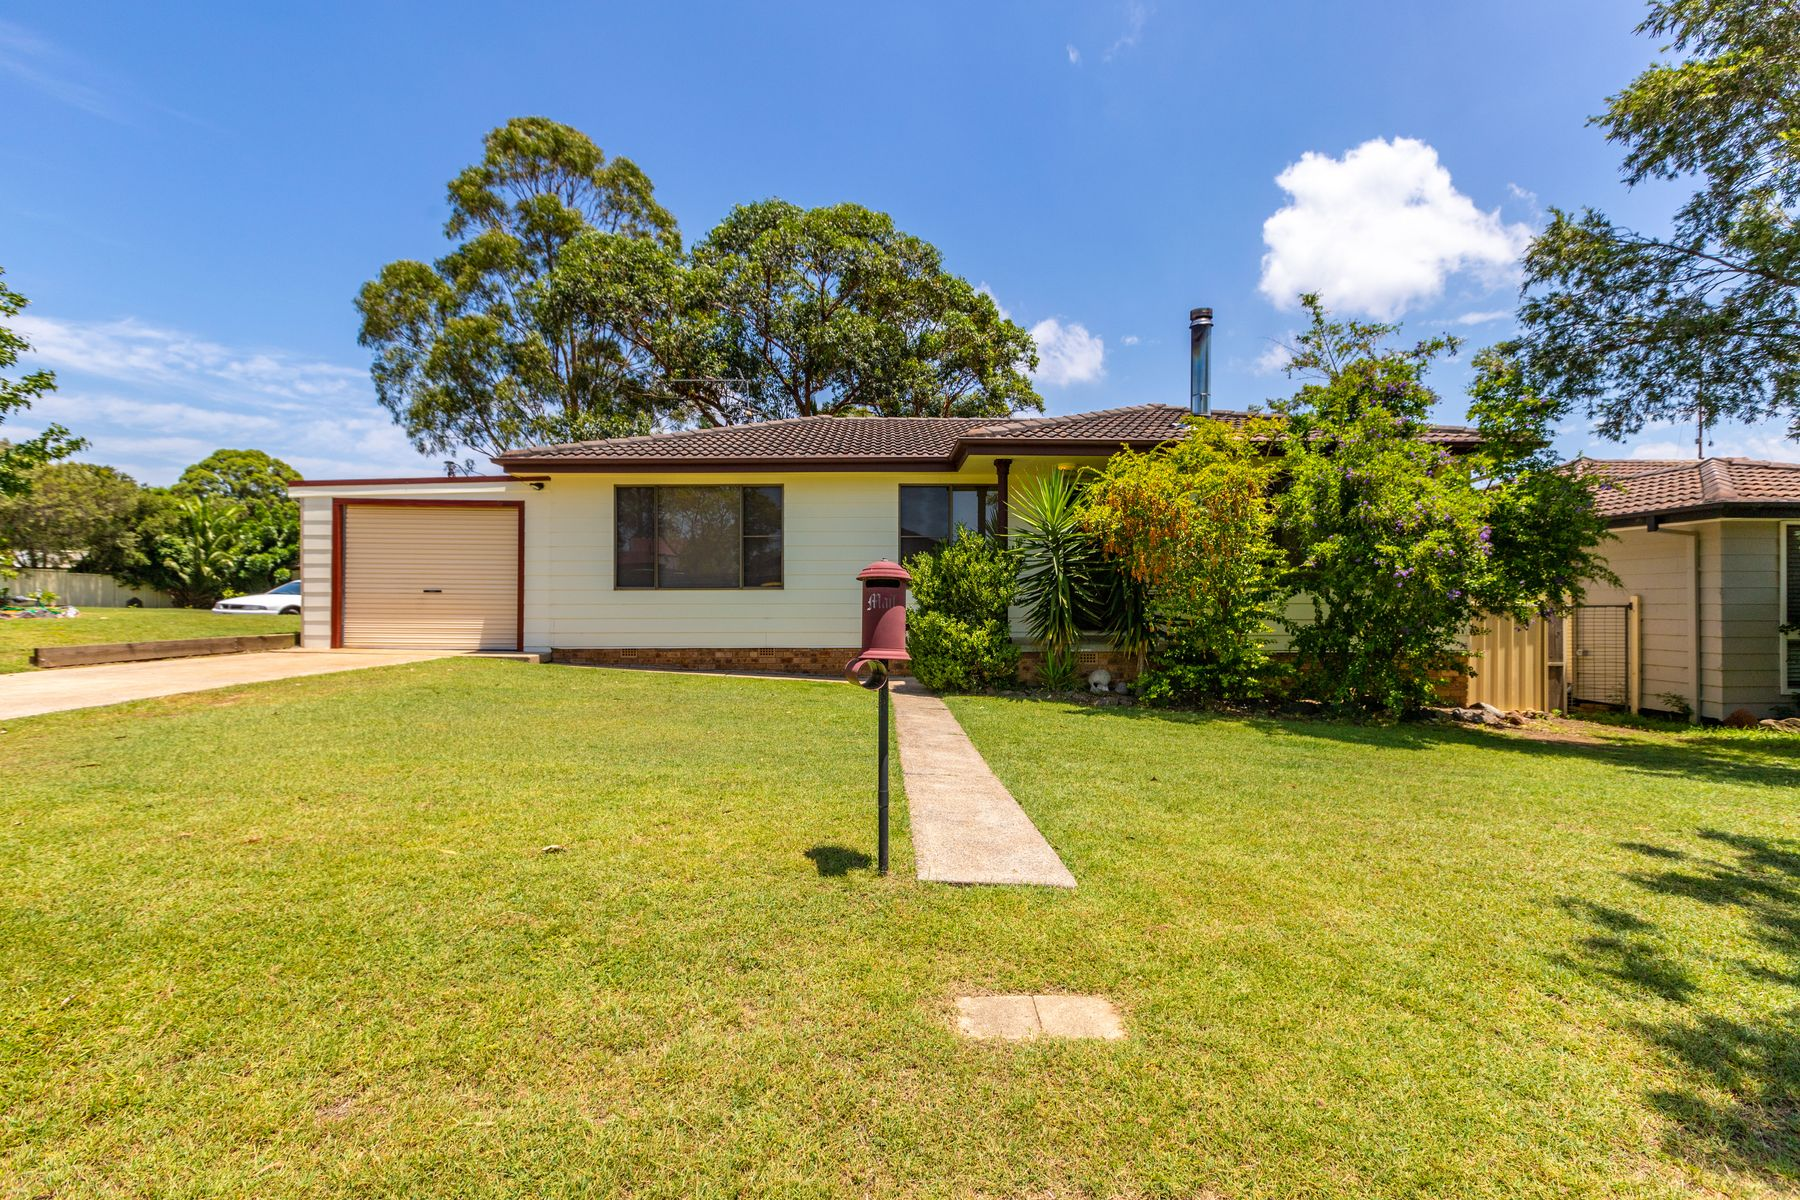 34. Endeavour Street, Rutherford, NSW 2320